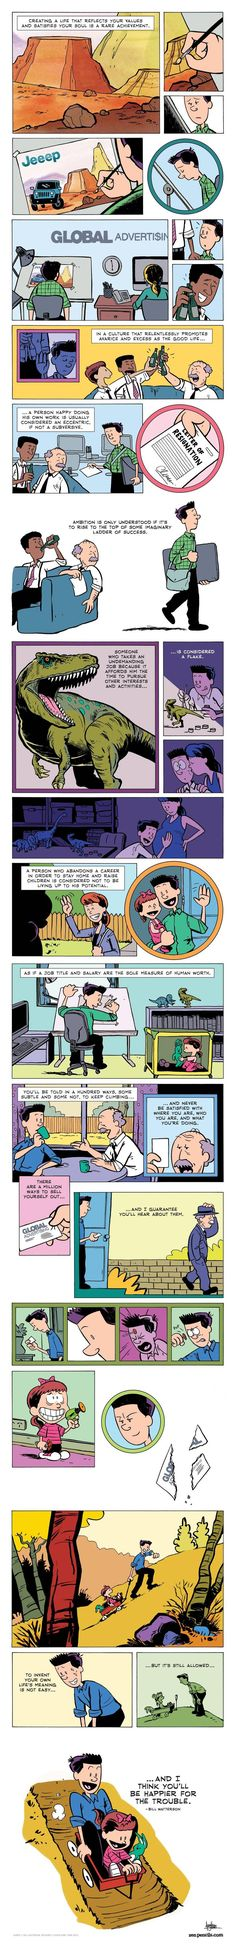 An incredible comic by Bill Watterson